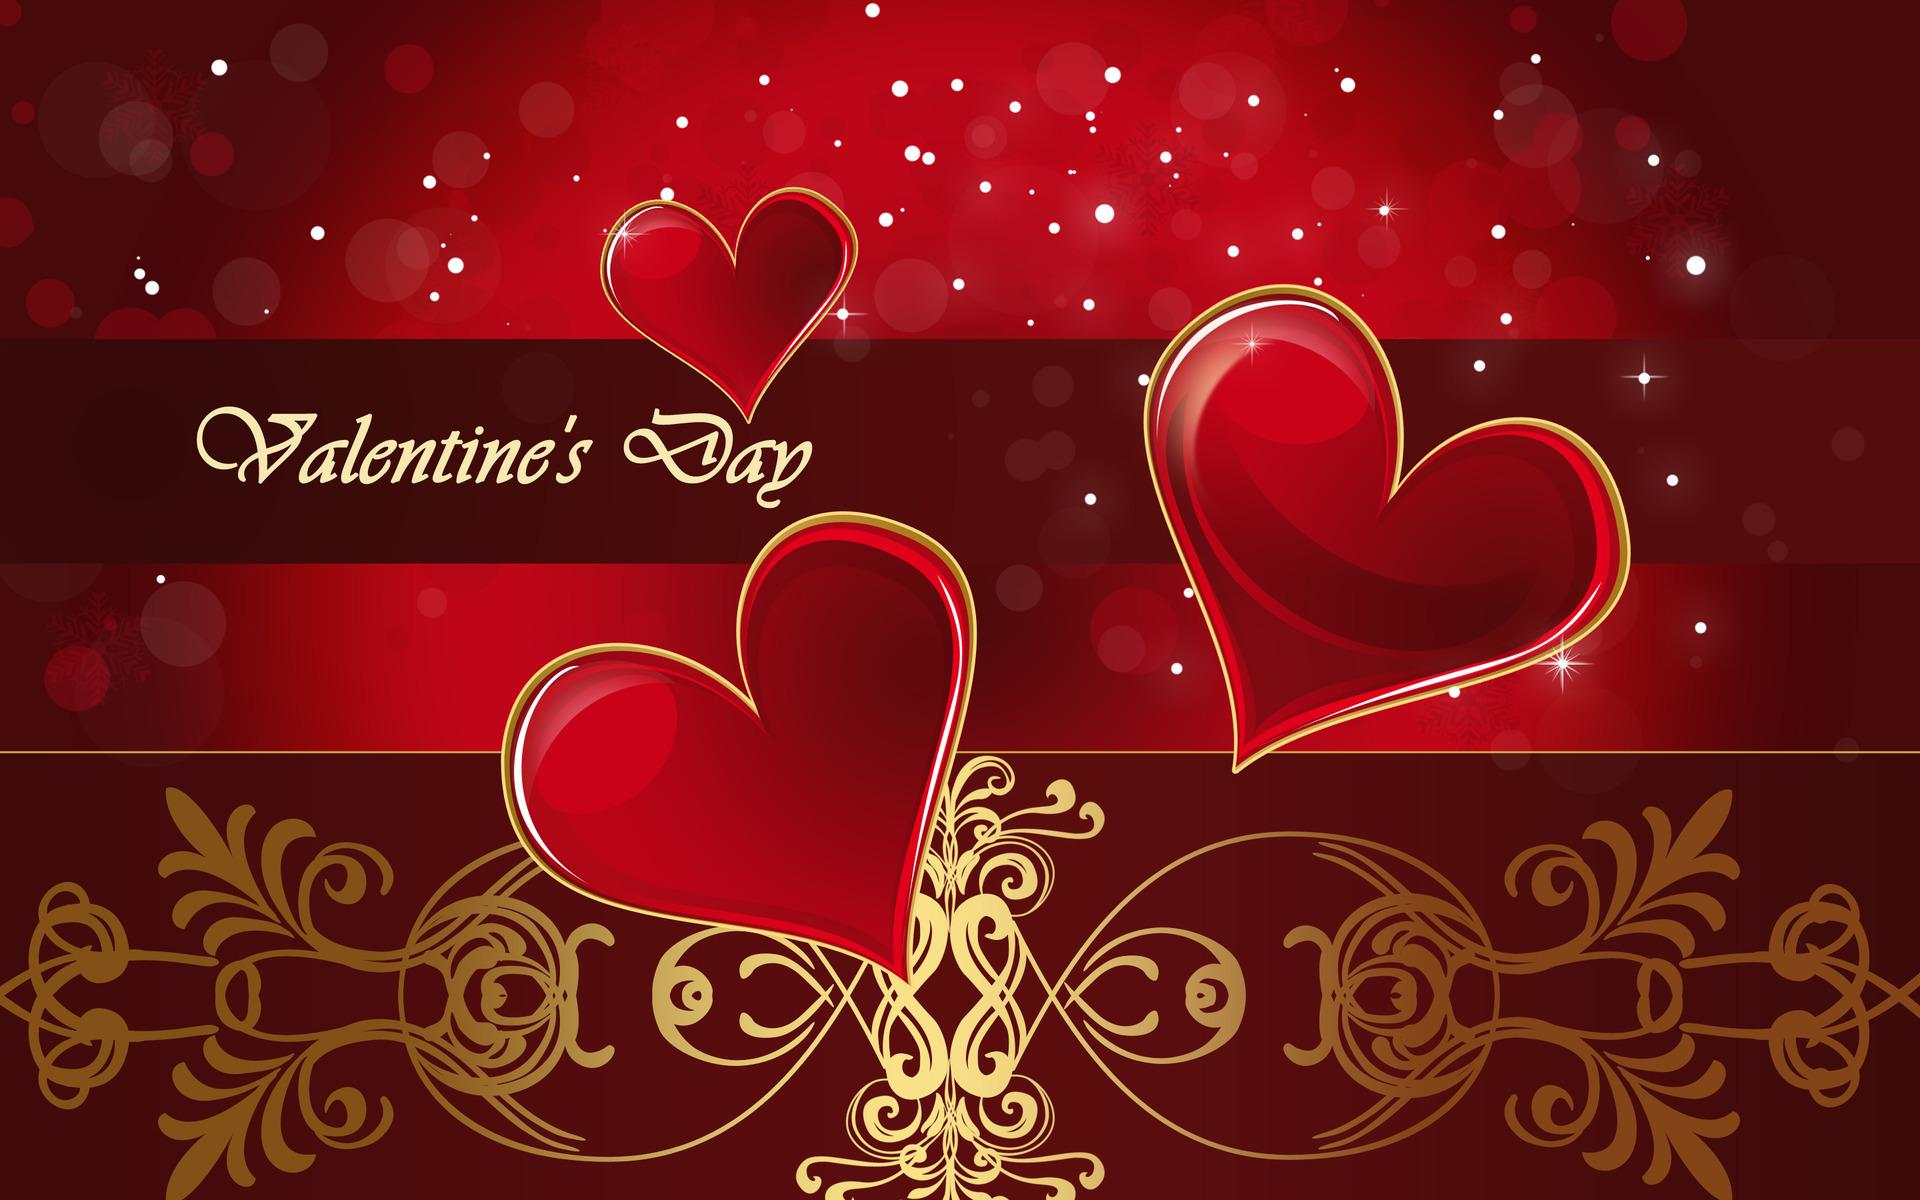 Happy Valentines Day Love Wishes Greetings Templates Hd Wallpaper